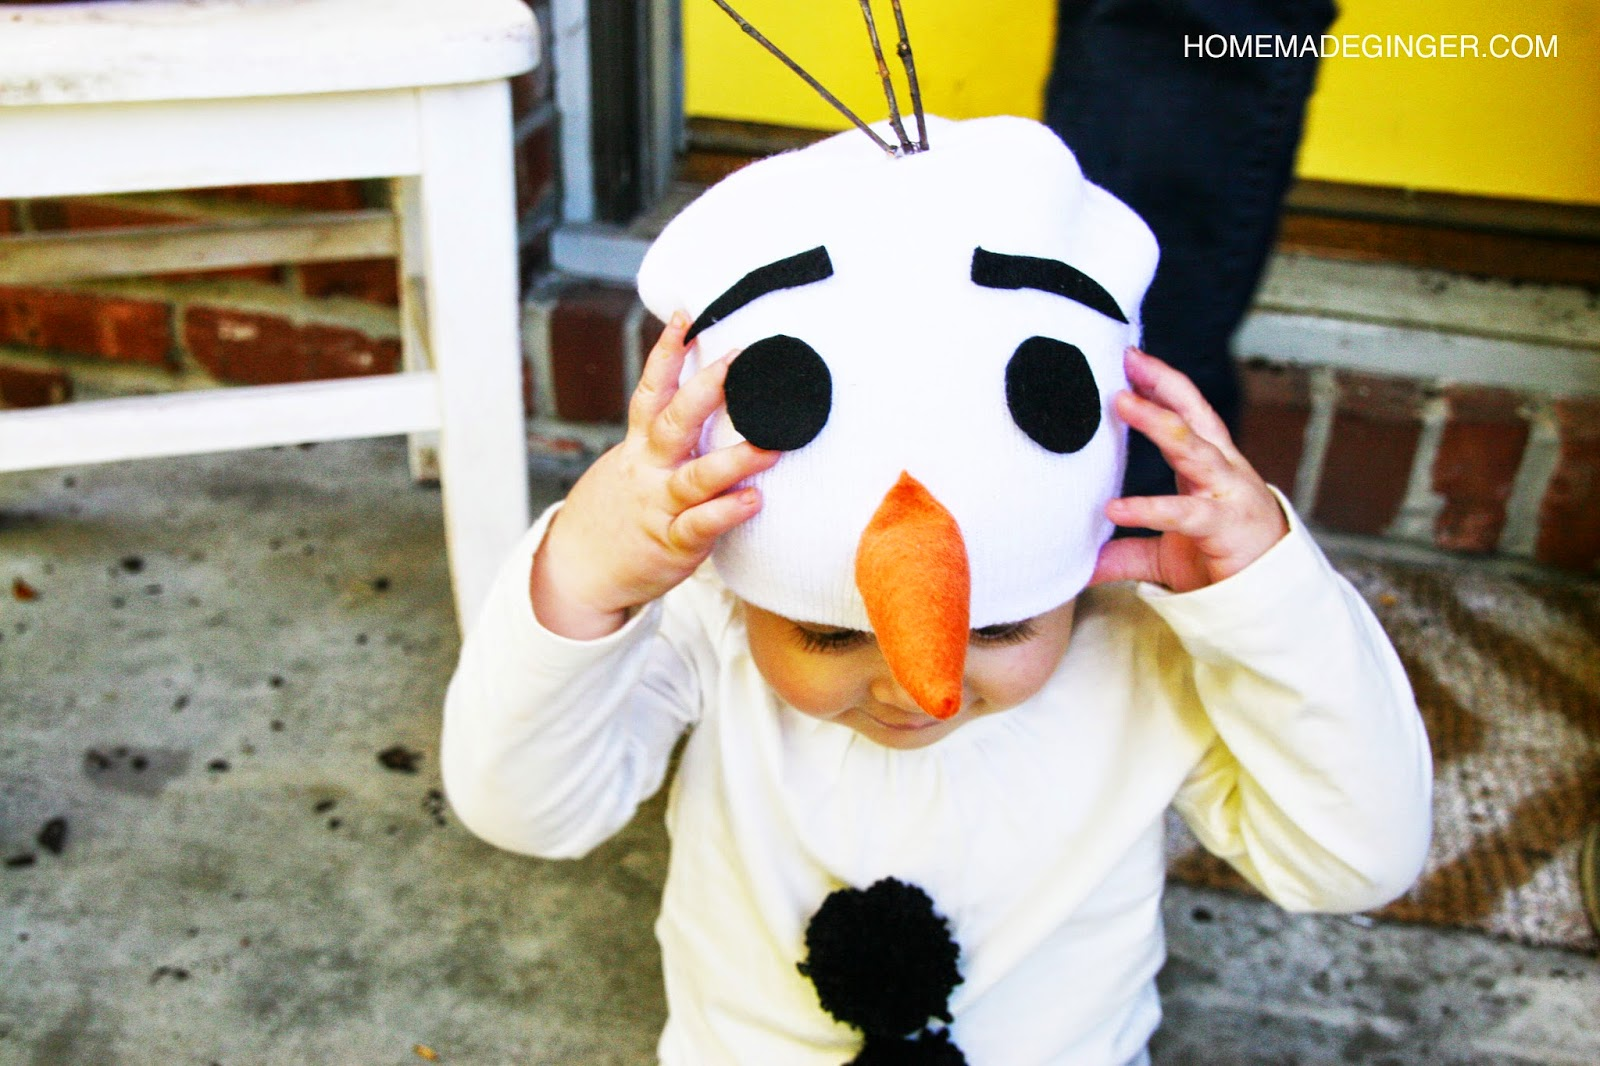 DIY snowman costume using white onesie and beanie hat